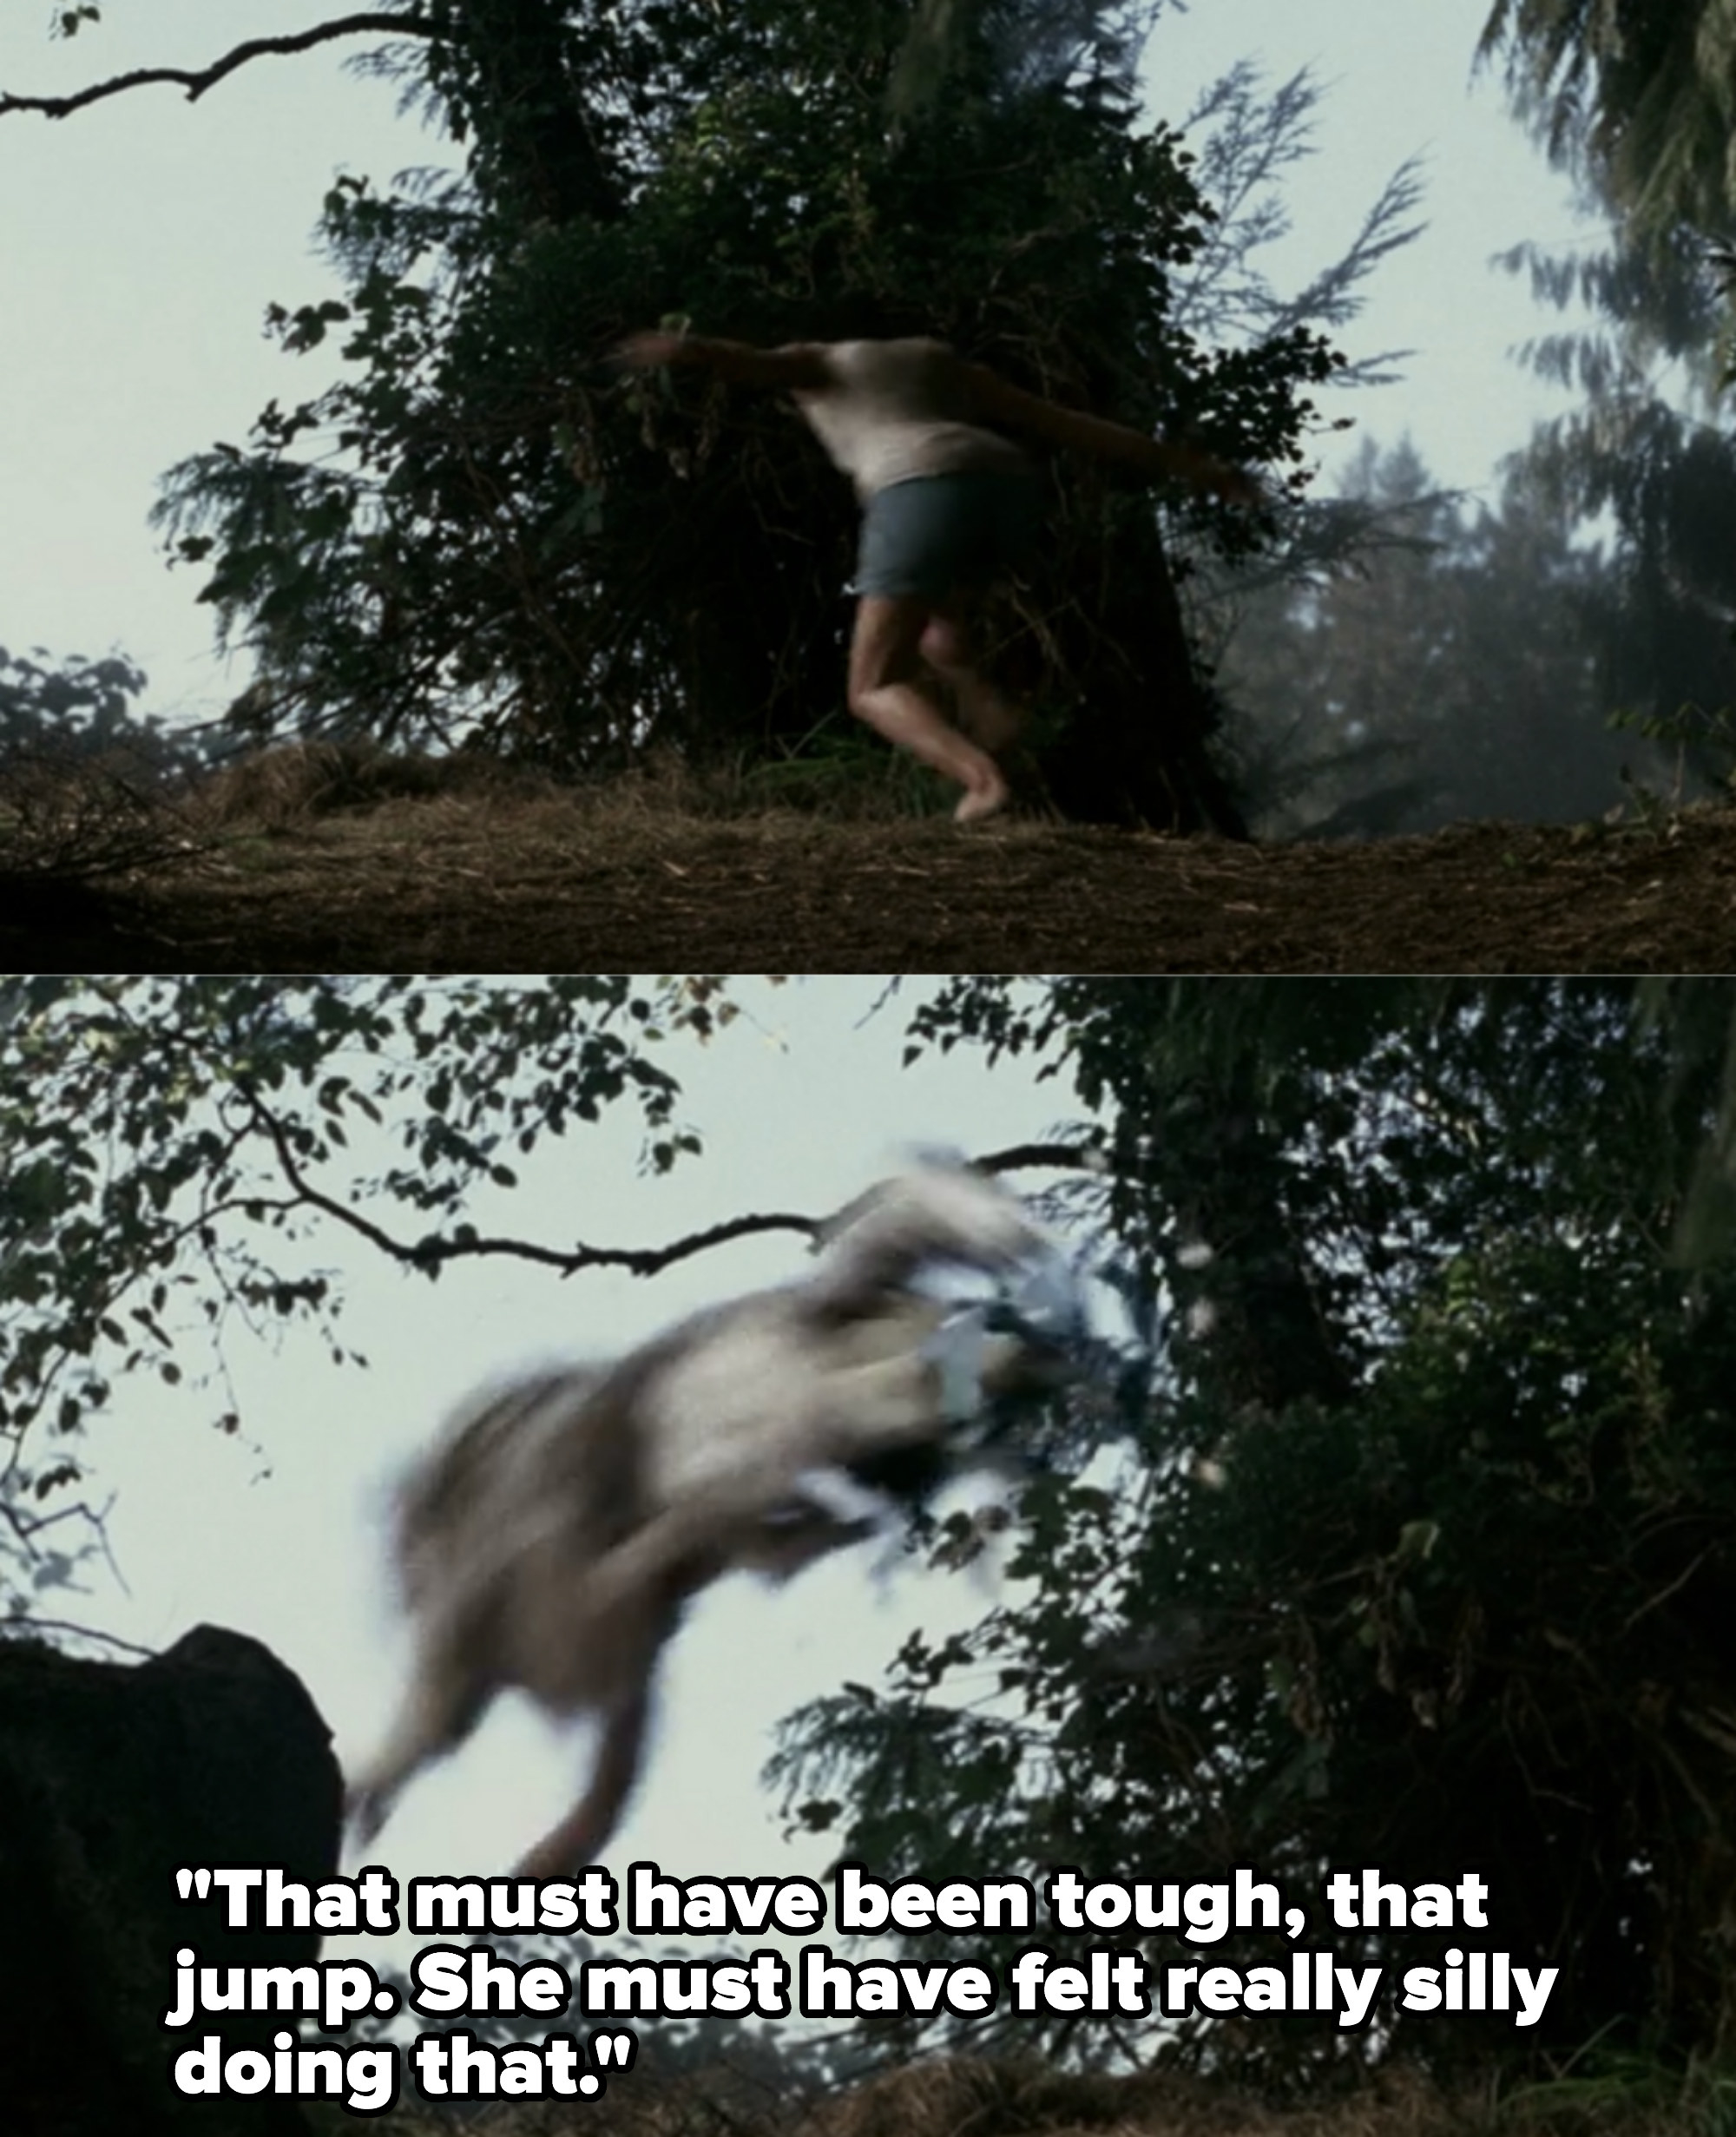 Woman transforms into wolf. Rob:That must have been tough, that jump. She must have felt really silly doing that.